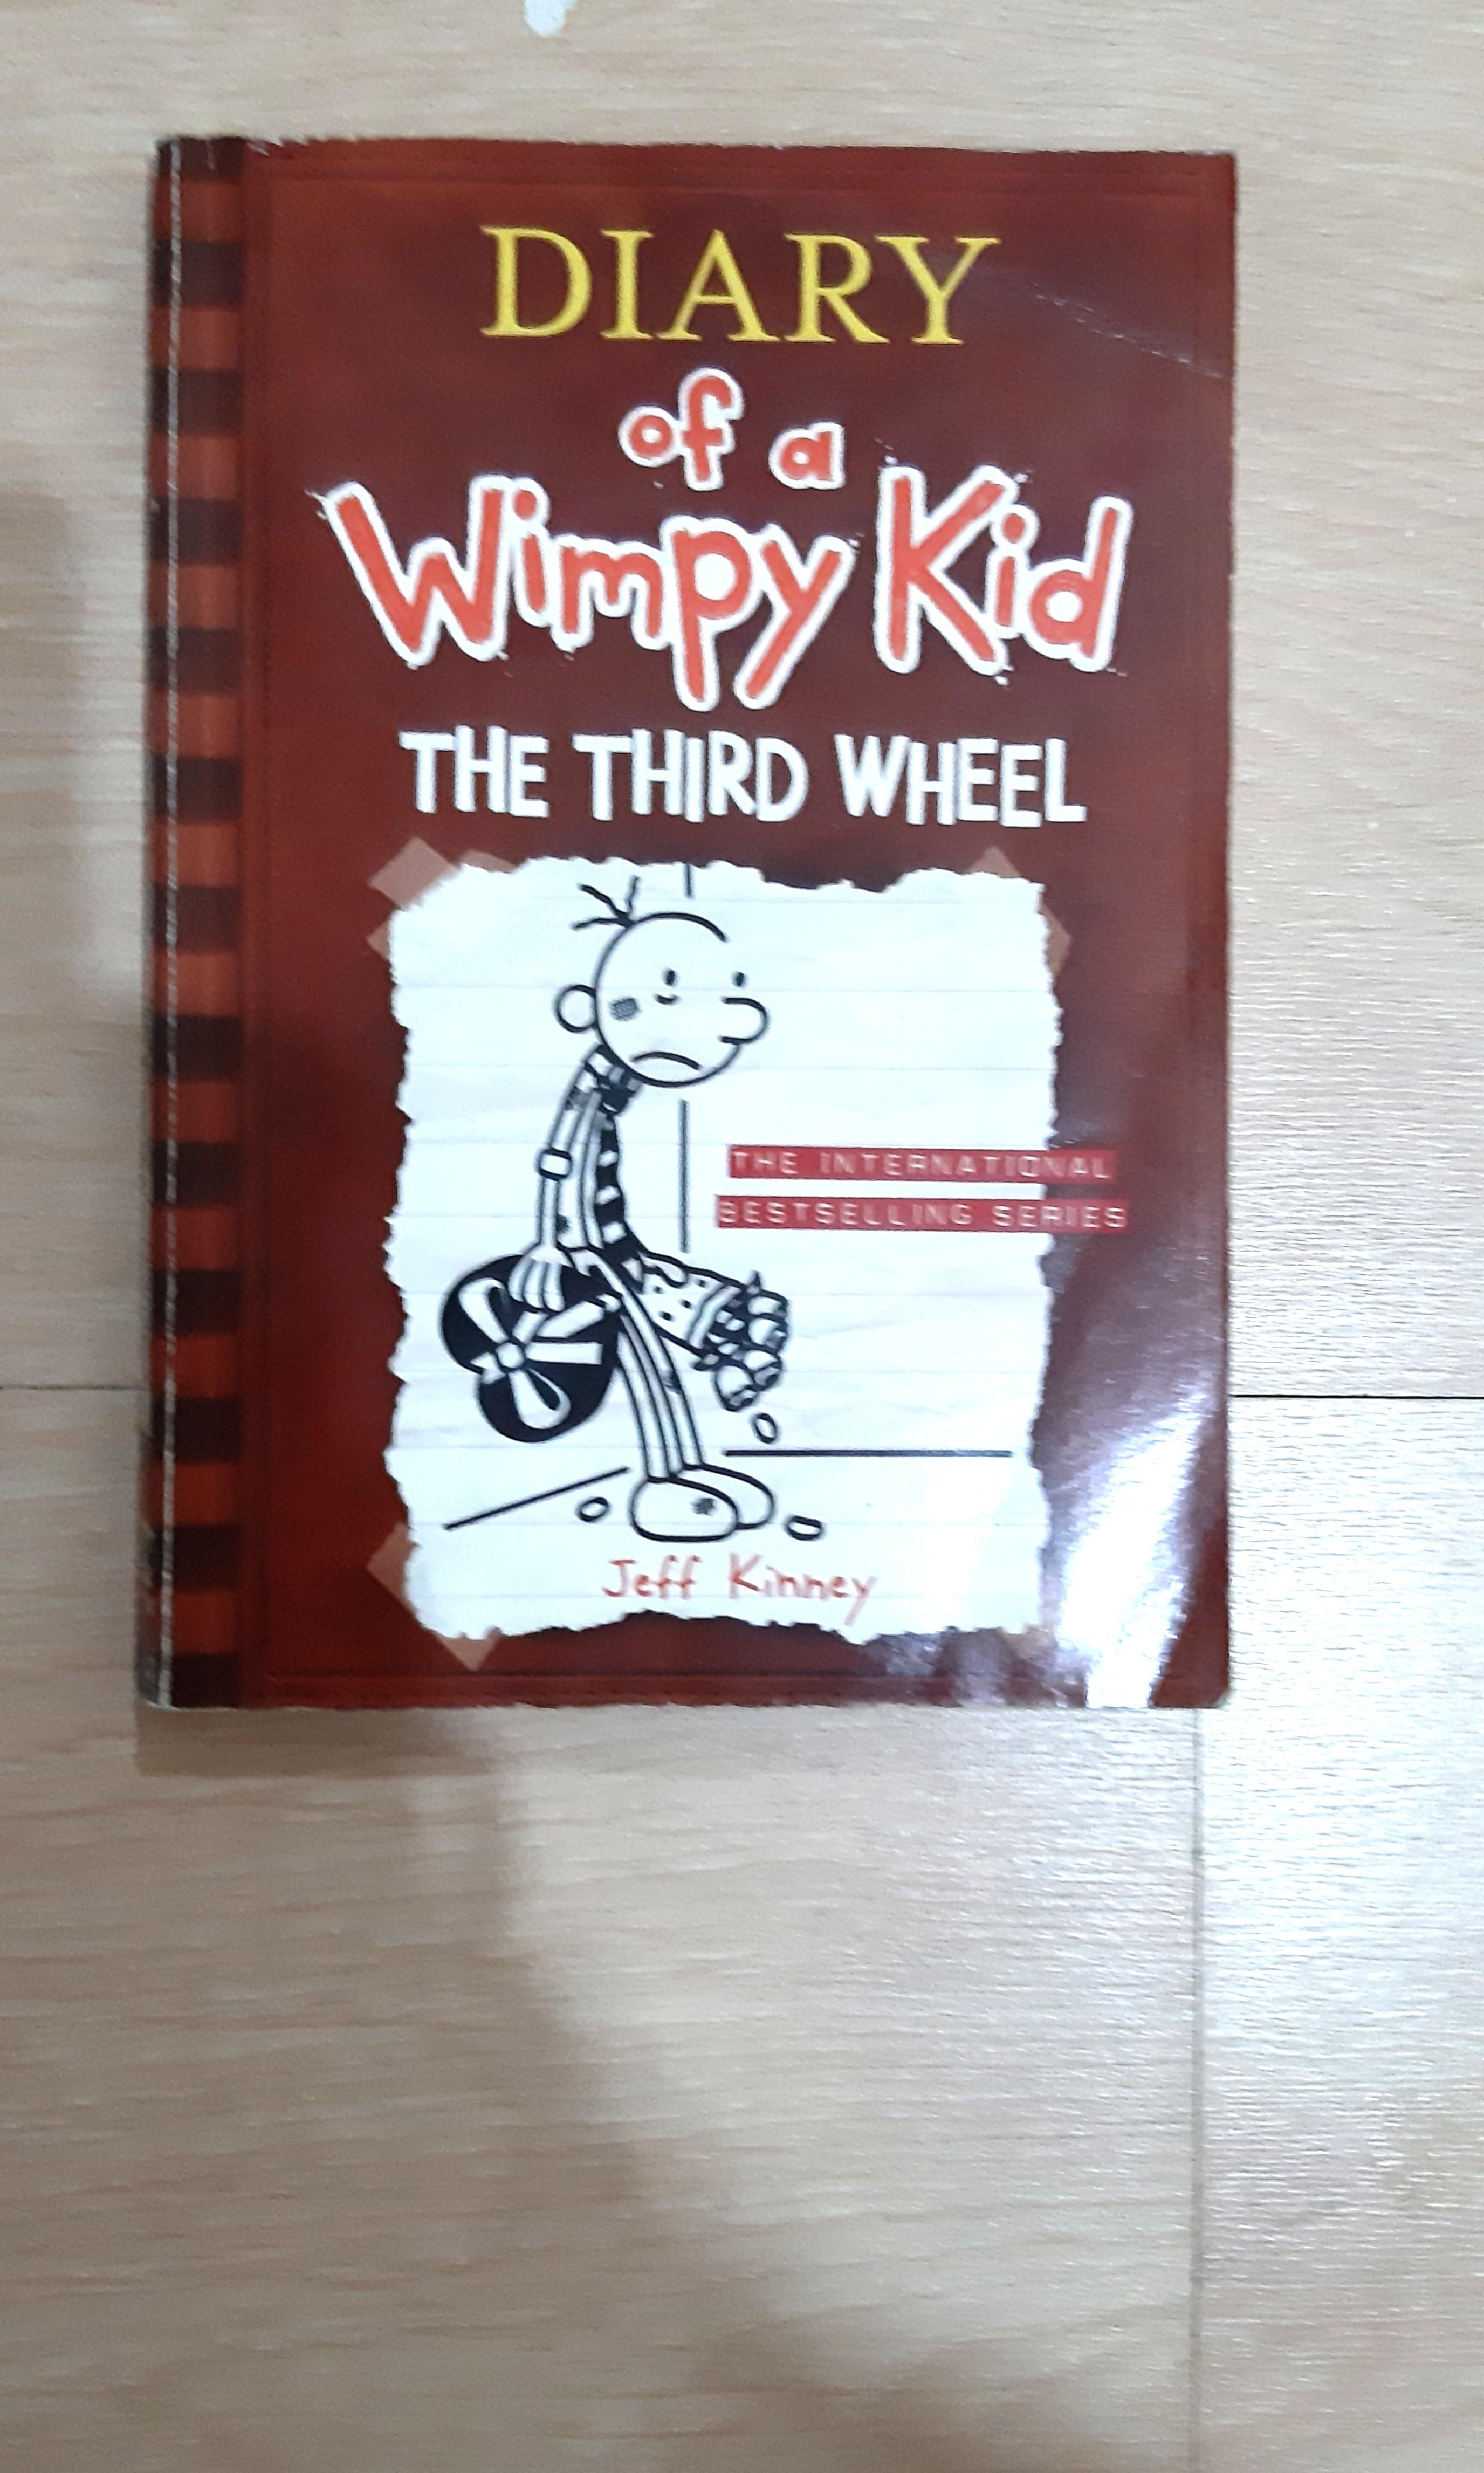 Diary Of A Wimpy Kid The Third Wheel By Jeff Kinney Soft Cover Books Children S Books On Carousell